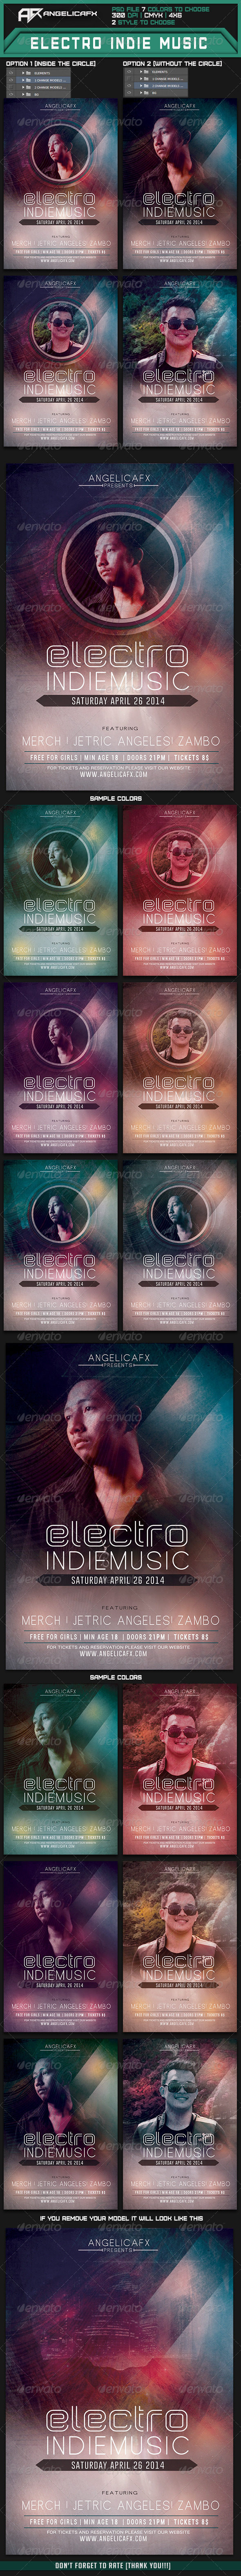 GraphicRiver Electro Indie Music Flyer Template 7336137